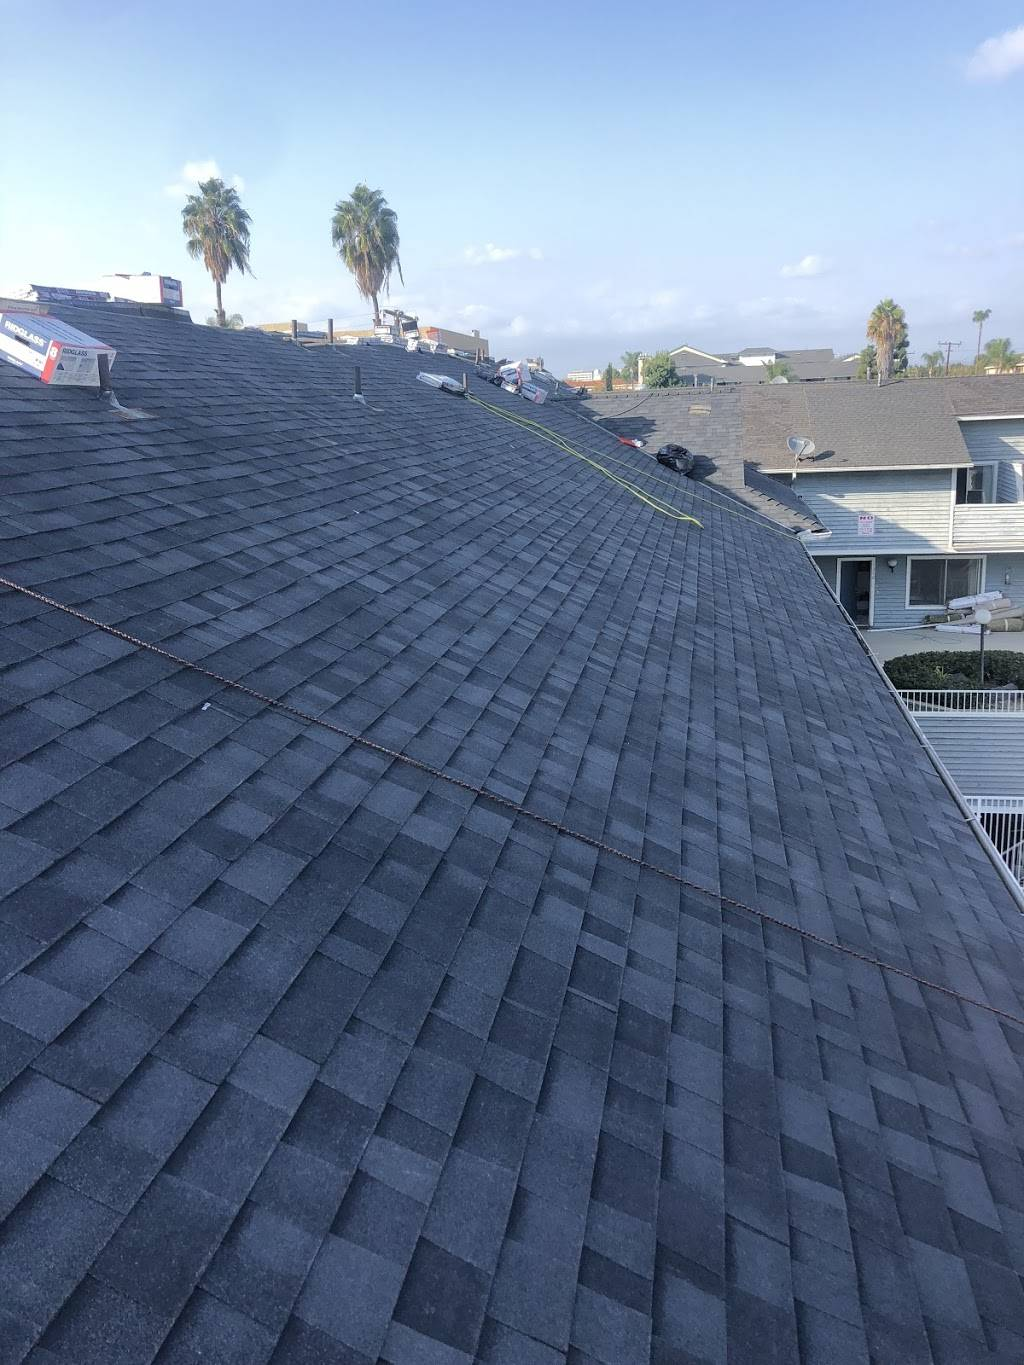 Ayon's Roofing - roofing contractor  | Photo 1 of 8 | Address: 1713 E Sycamore St, Anaheim, CA 92805, USA | Phone: (714) 944-3340